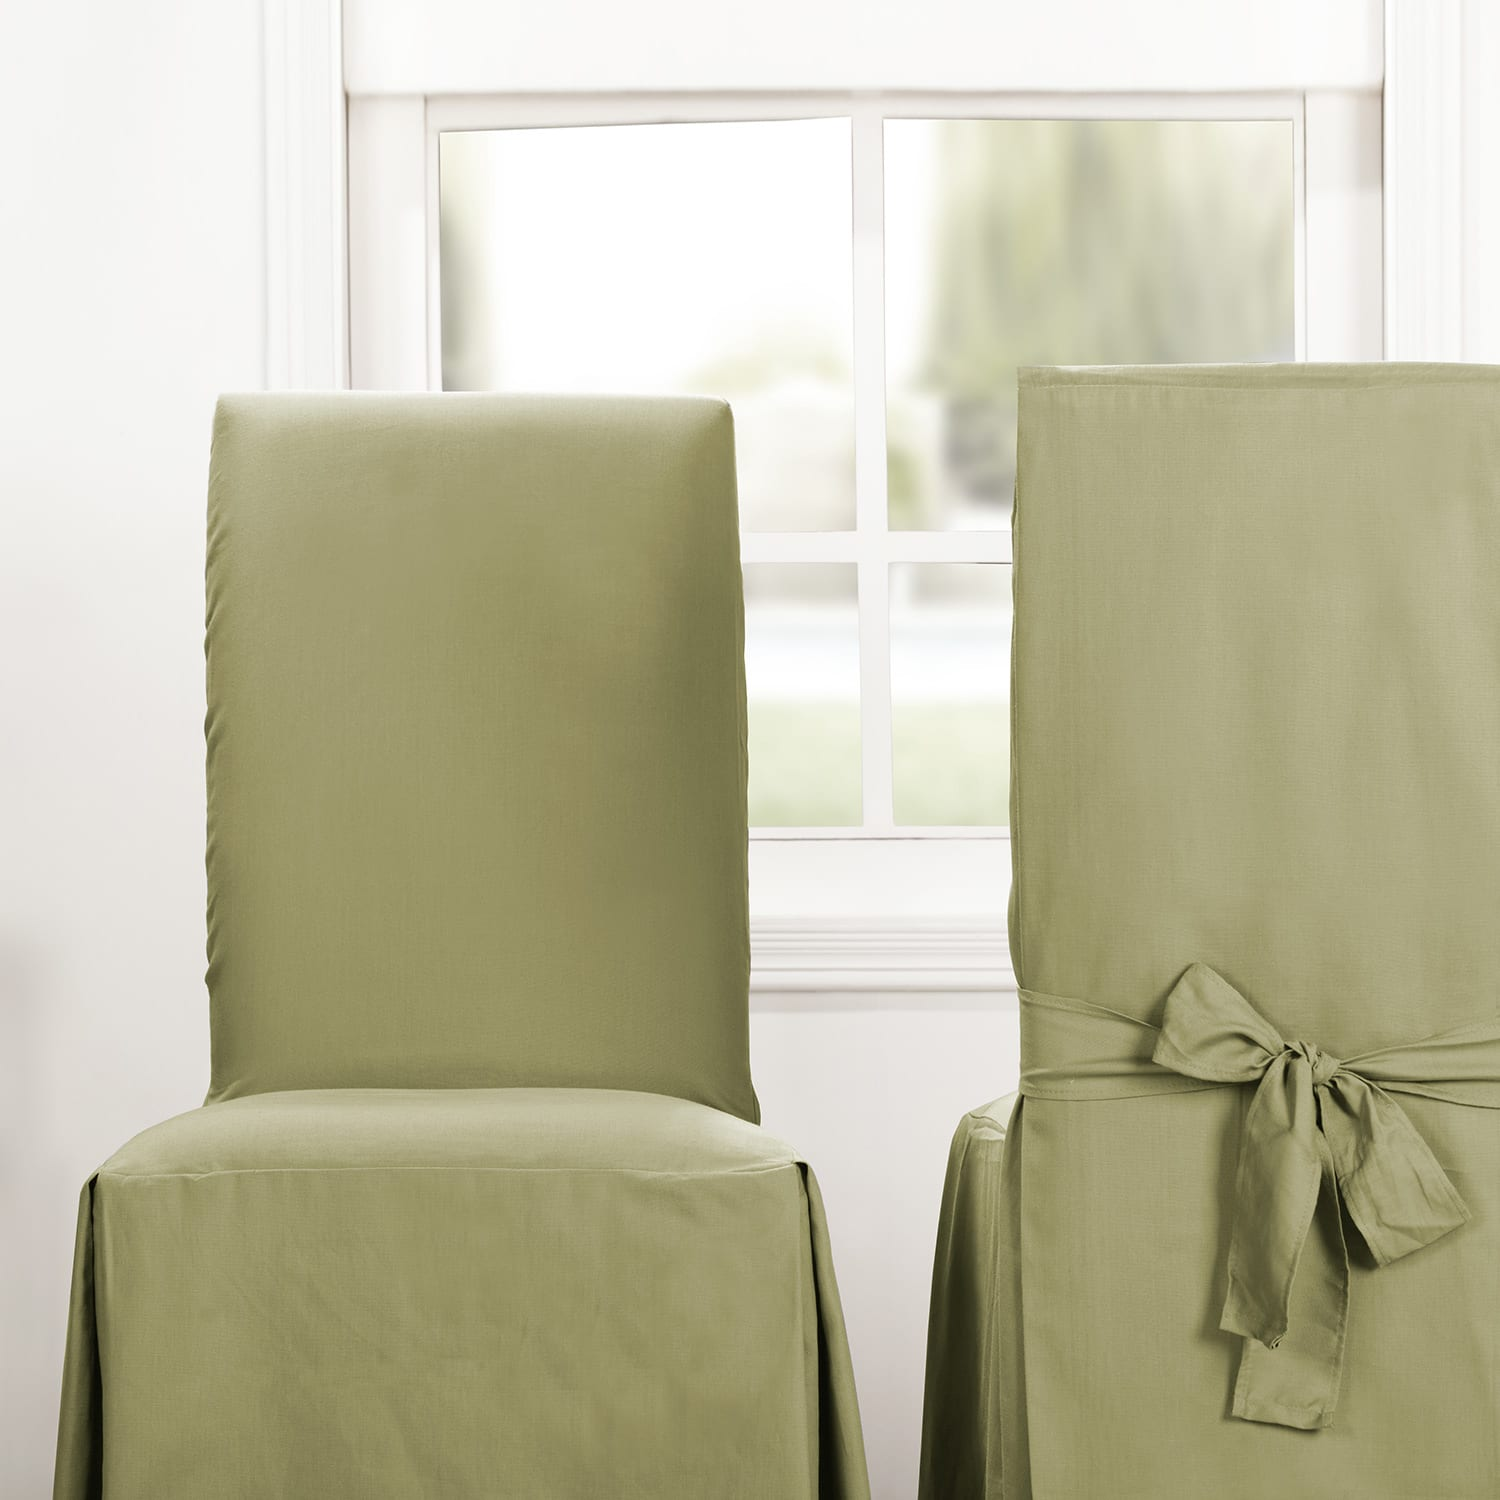 Mountain Moss Solid Cotton Chair Covers (Sold As Pair)